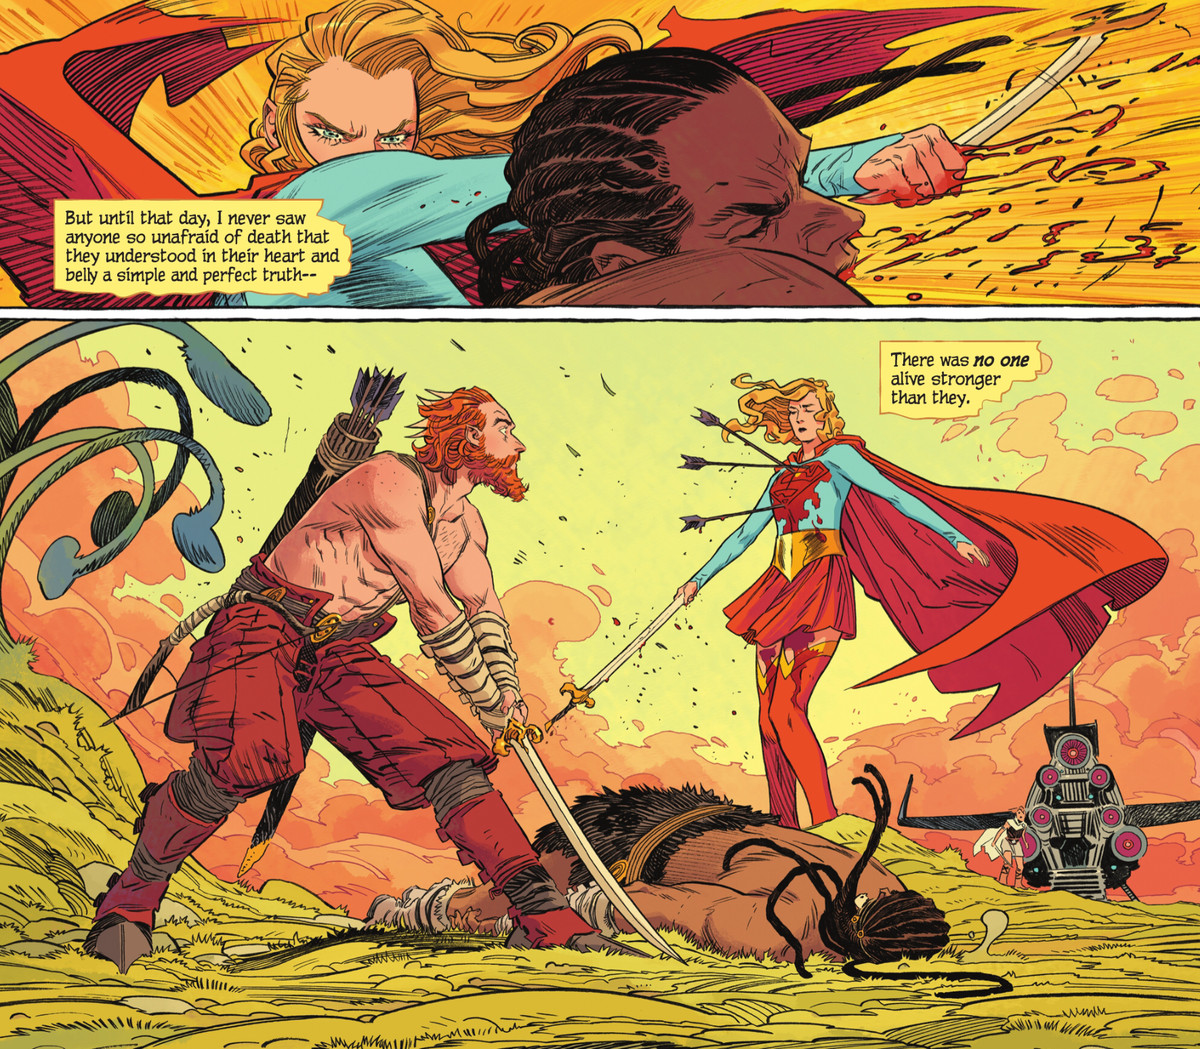 """Holding his sword by the tip of the blade, Supergirl punches an assailant to the ground, to the shock of his friend, who fired the three arrows embedded in her bloody chest. """"Until that day,"""" says a narration box, """"I never saw anyone so unafraid of death that they understood in their heart [...] there was no one alive stronger than they,"""" in Supergirl: Woman of Tomorrow #1 (2021)."""